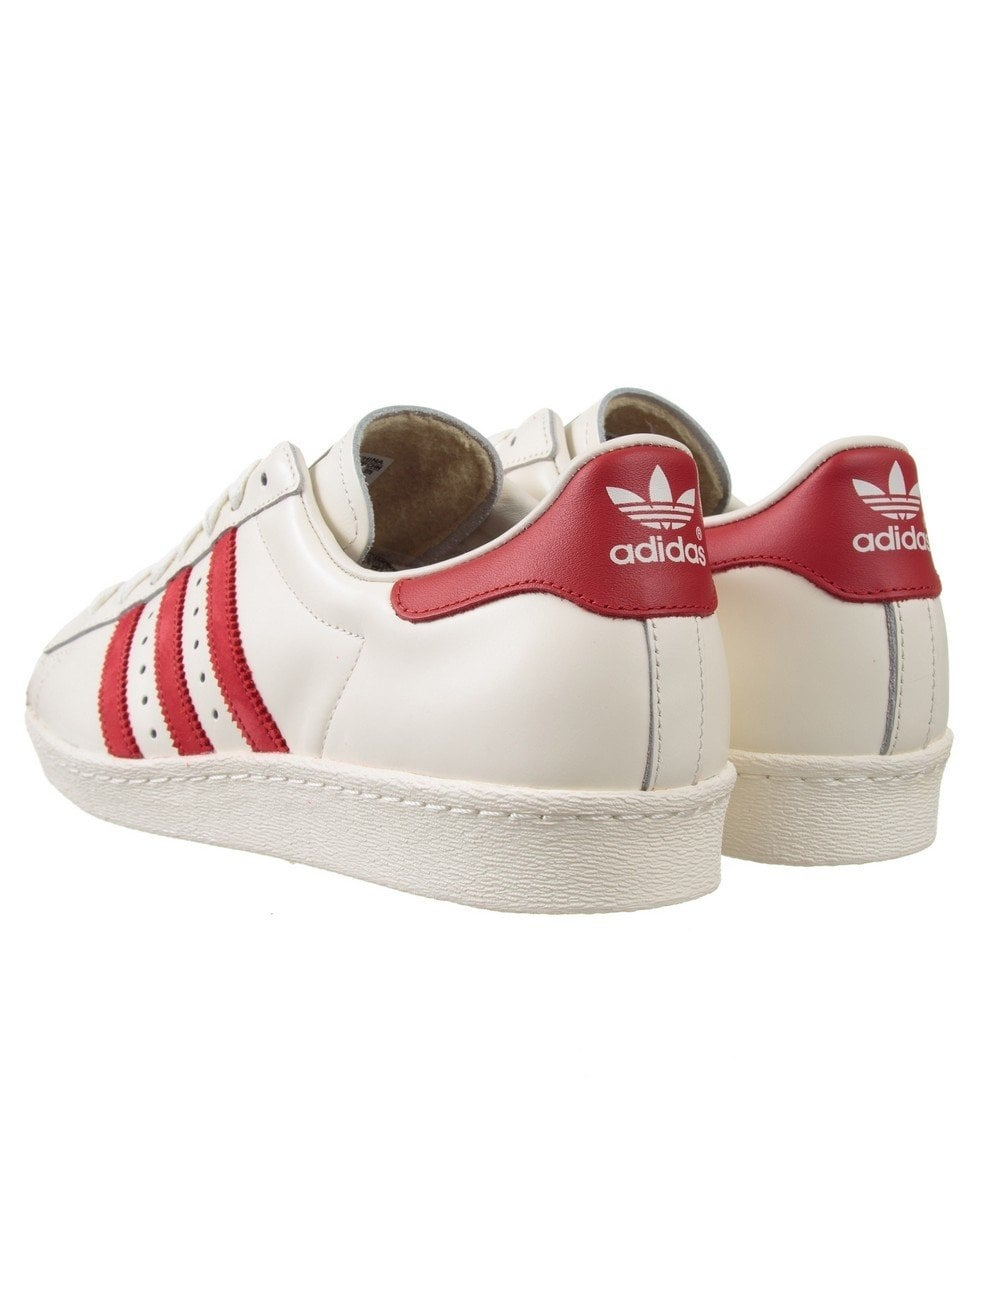 Adidas Originals Superstar 80s Delux Shoes Vintage White Scarlet